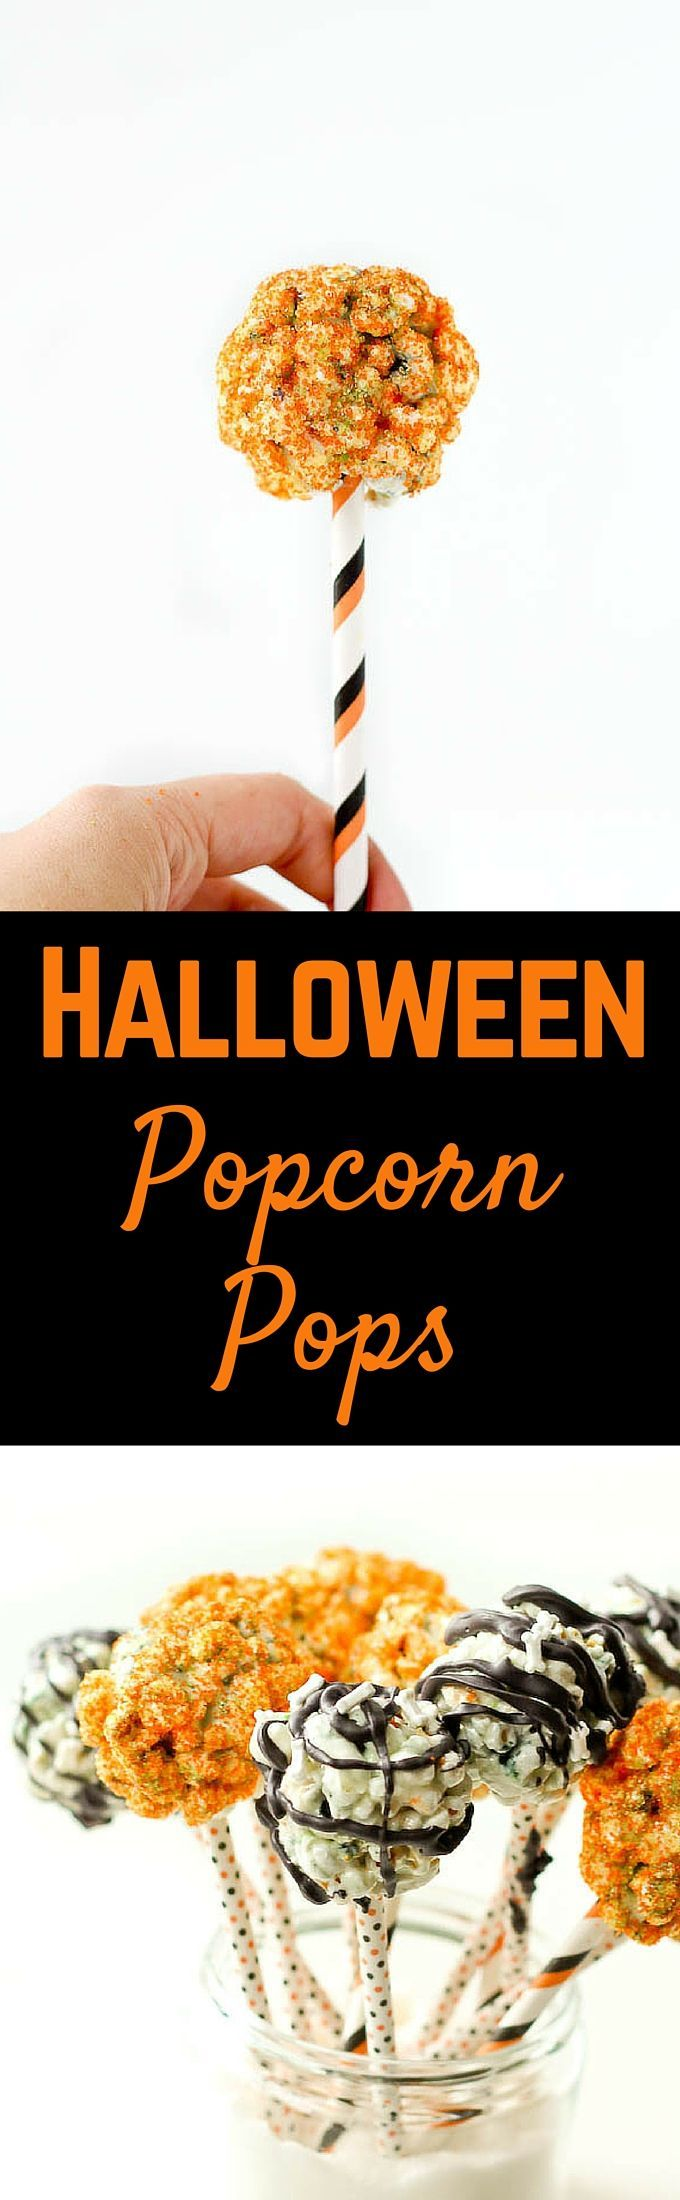 This Halloween popcorn pops recipe is perfect for Halloween parties and events, and easier to make than you'd think! Kids and adults will love eating their sweet, pumpkin-spiced popcorn off of a stick! Get the recipe on RachelCooks.com! #ad #CampfireMallows @campfiremallows